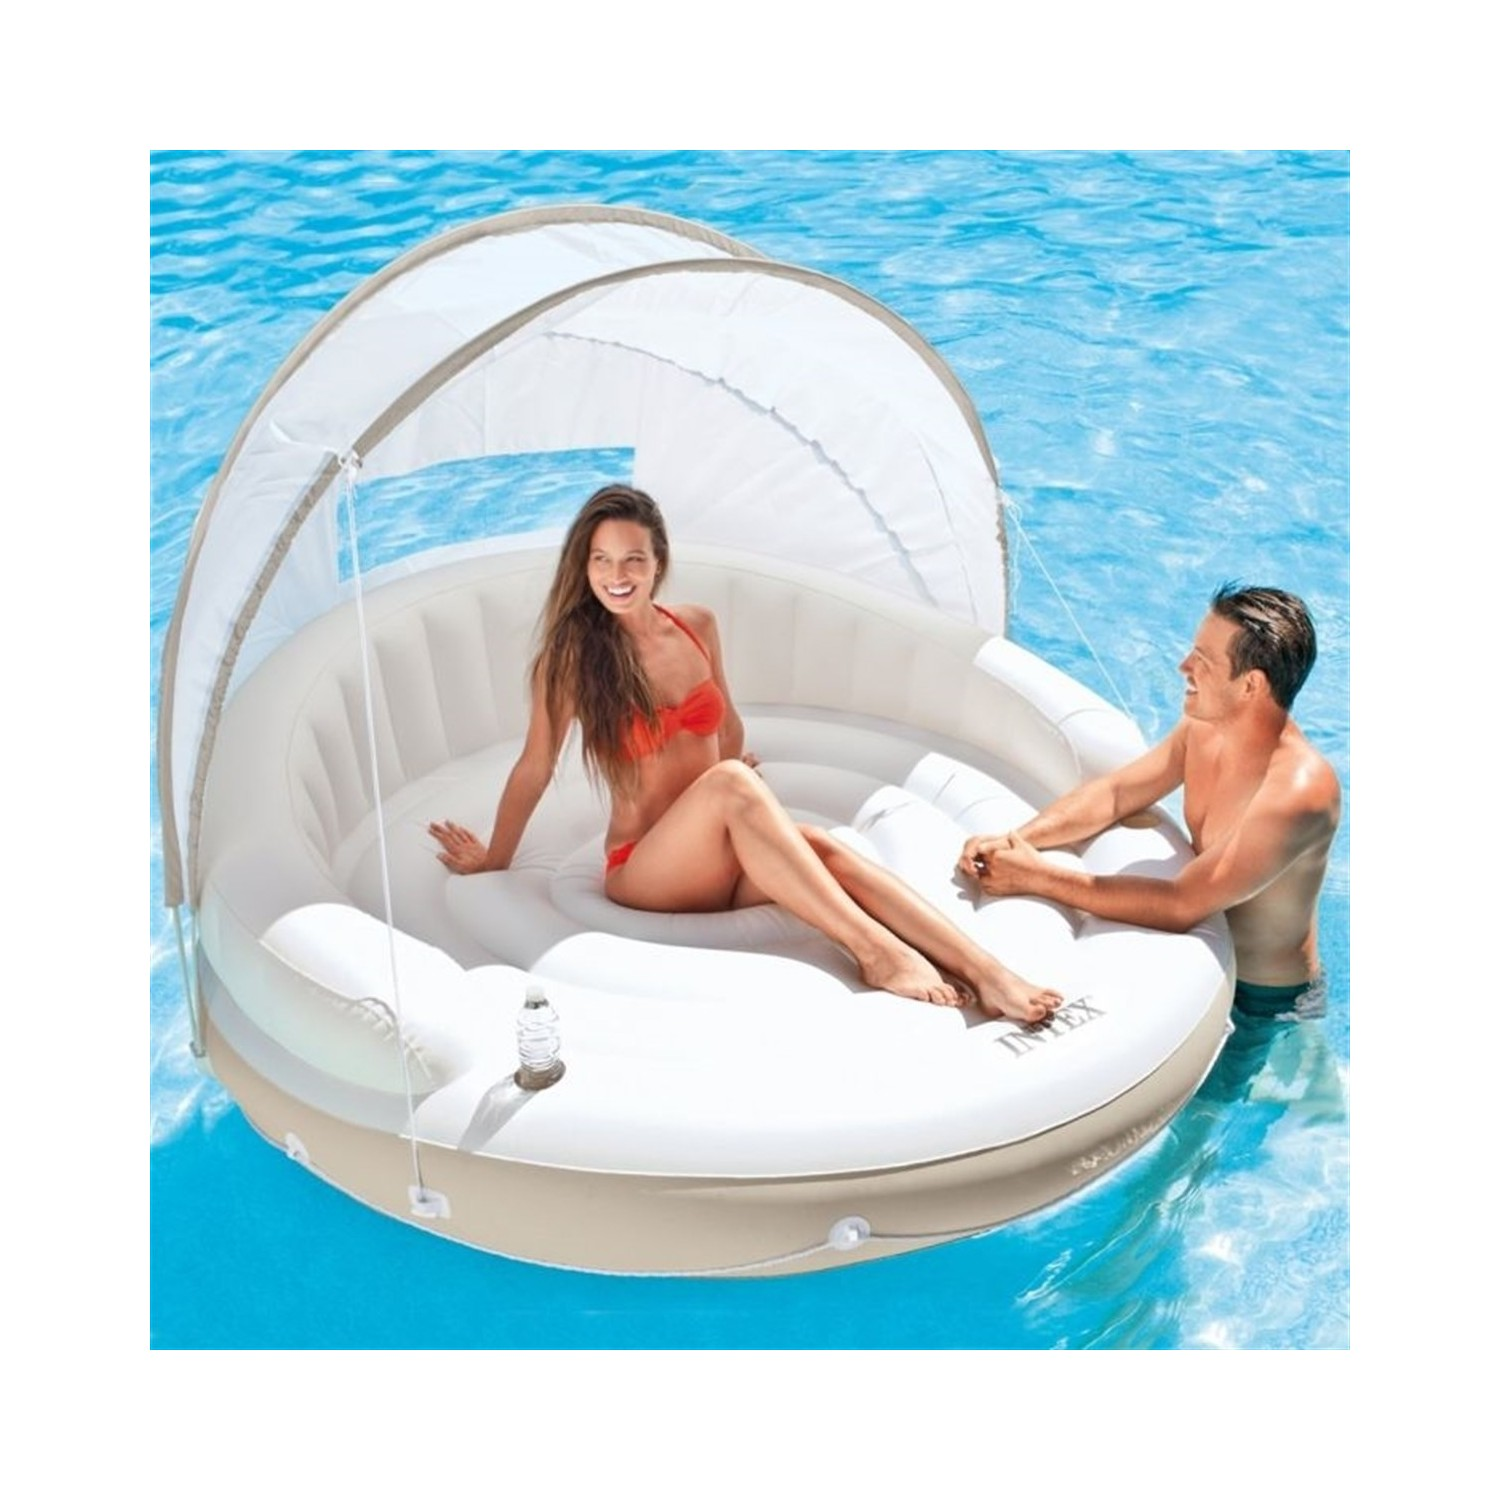 Vardem With Canopy And Sırtlıklı Luxury Island 199x150 Cm-Bed, Pool, Sea Inflatable Bed, Quality, Luxury, 2 Personality, Romantic